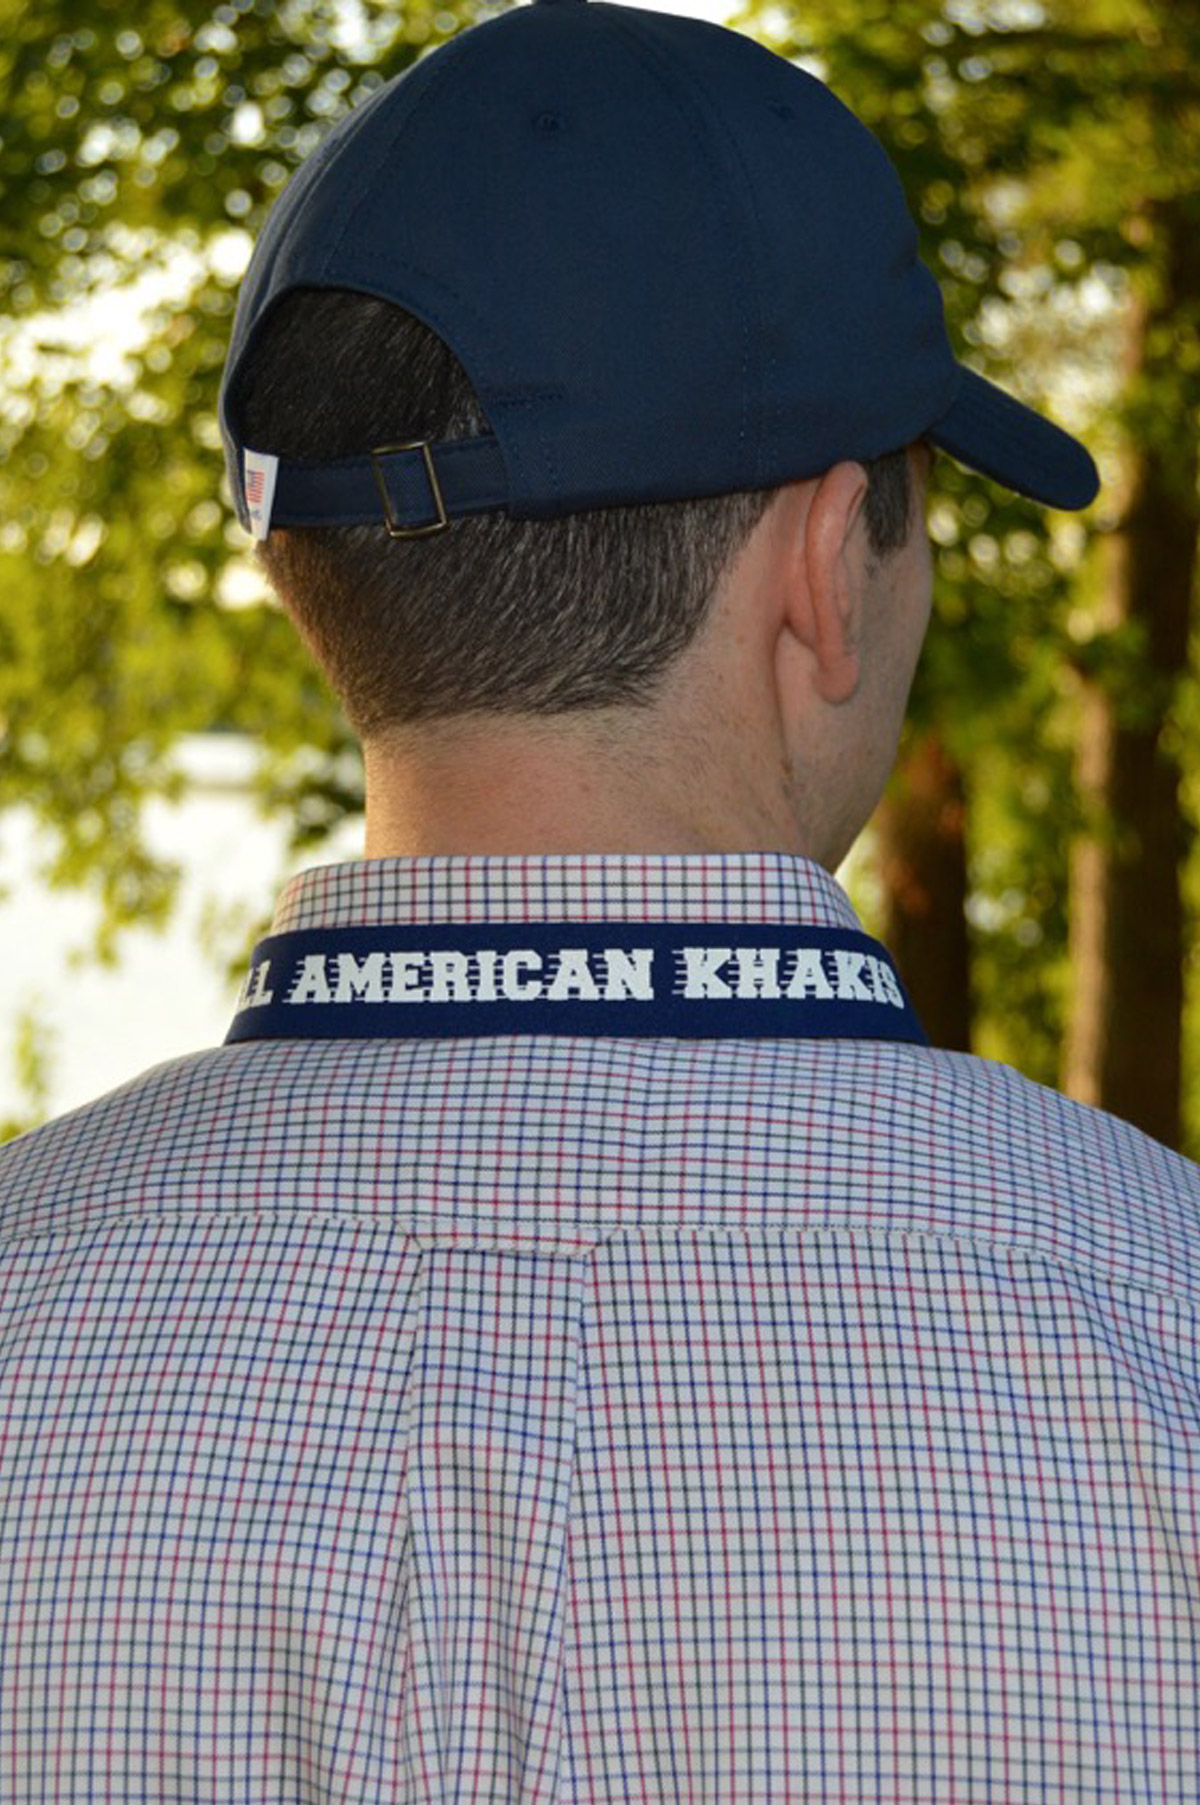 All American Khakis Sunglass Straps